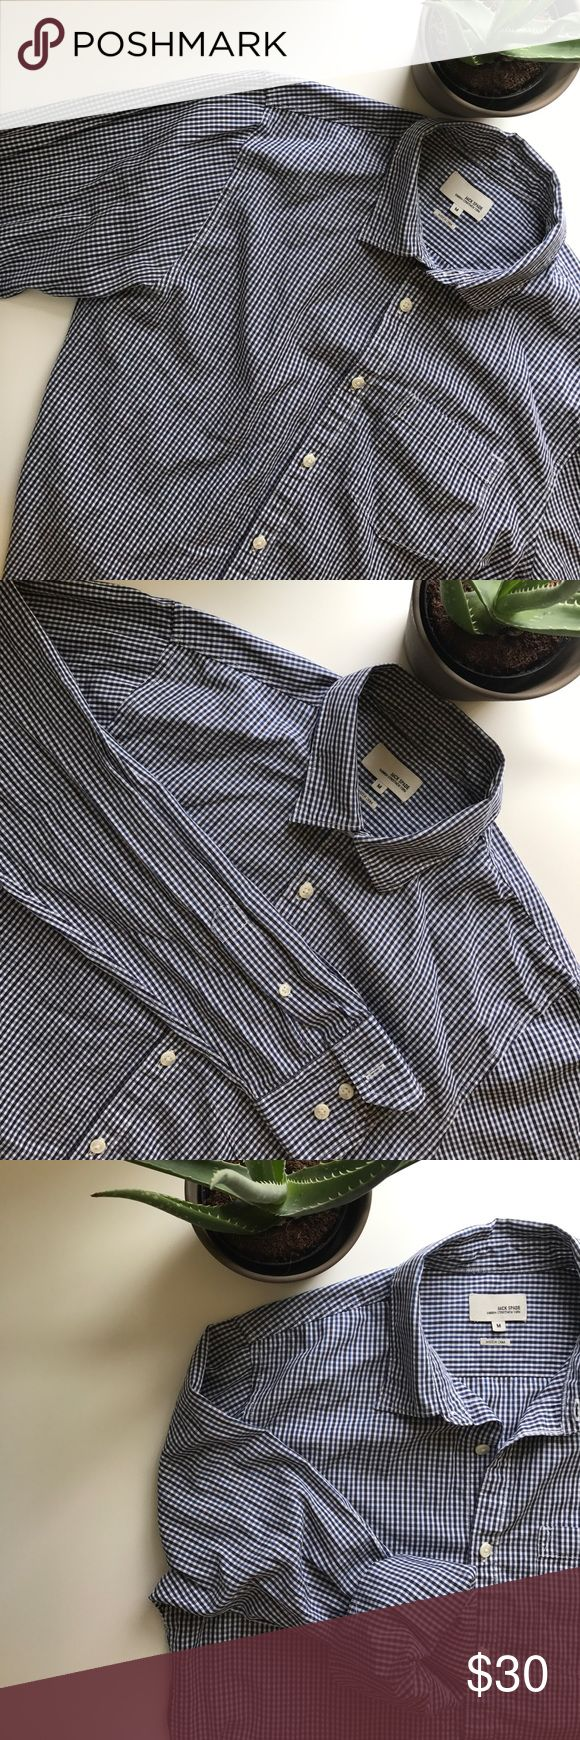 blue striped casual shirt blue navy and white striped casual shirt by jack spade                men's medium Jack Spade Shirts Casual Button Down Shirts